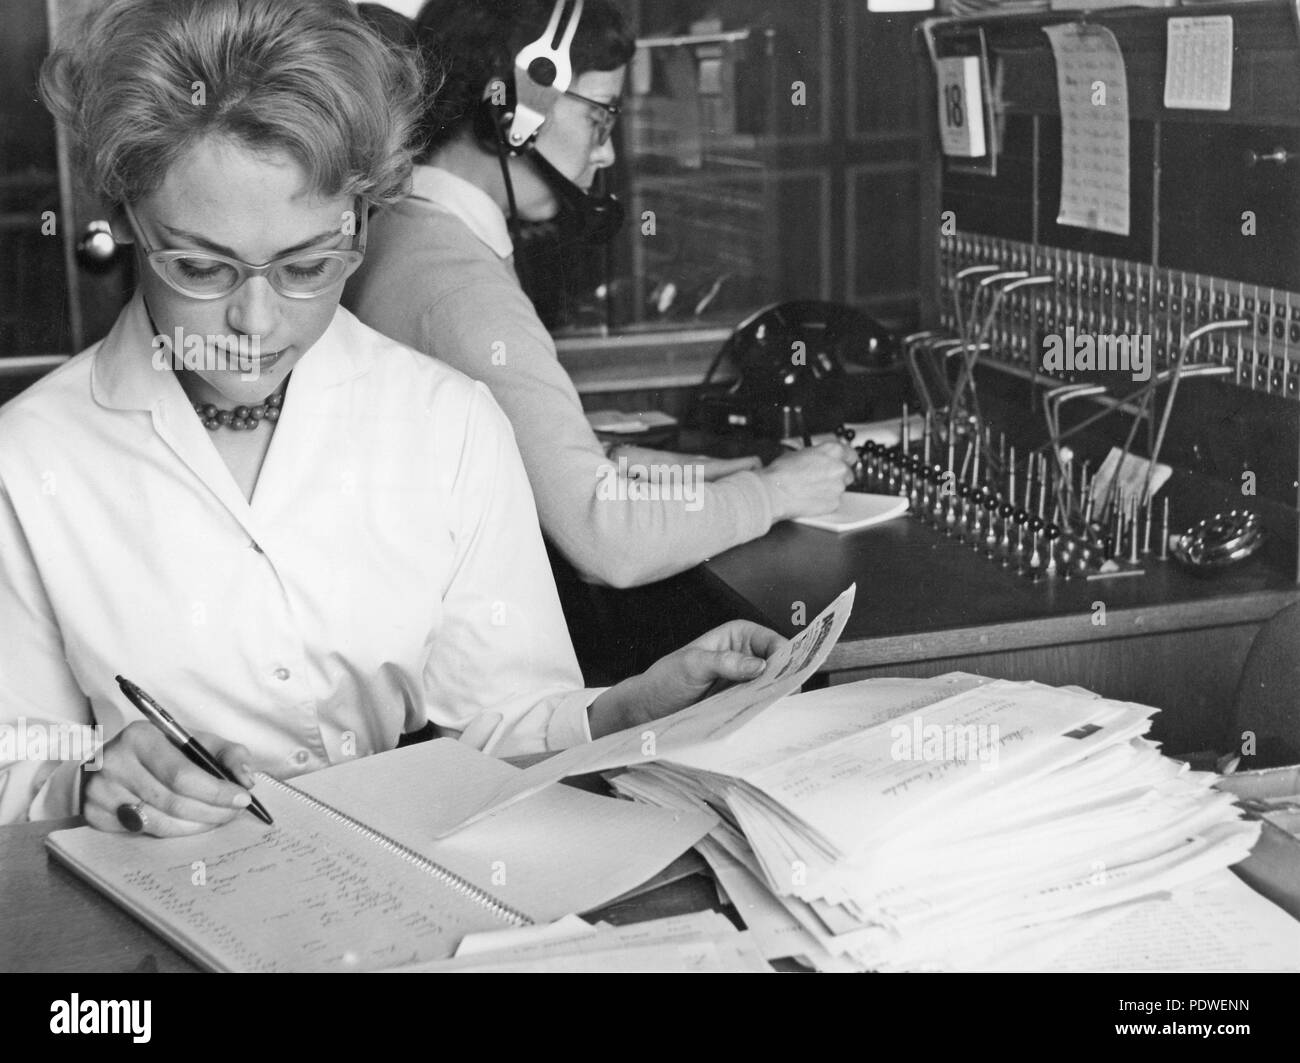 1950s office clerk and telephone switchboard operator. A young office worker is sitting at her desk handling documents. A telephone operator is sitting behind her taking incoming calls and connecting them further. 1958 - Stock Image